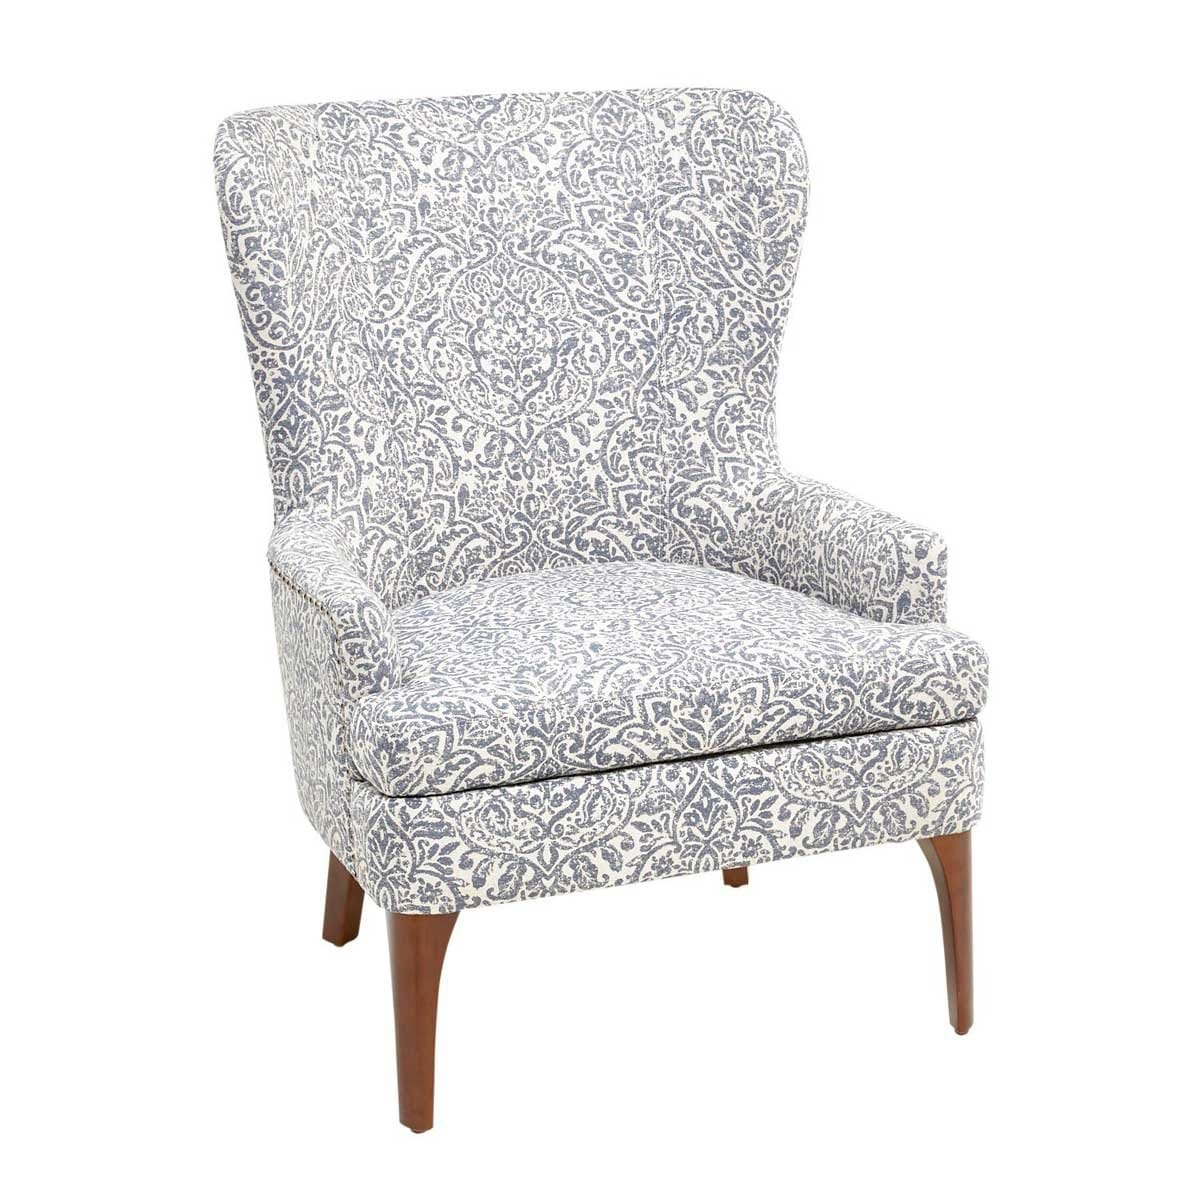 Sillón Indigo Damask Wing Austin Collection Pier 1 Imports